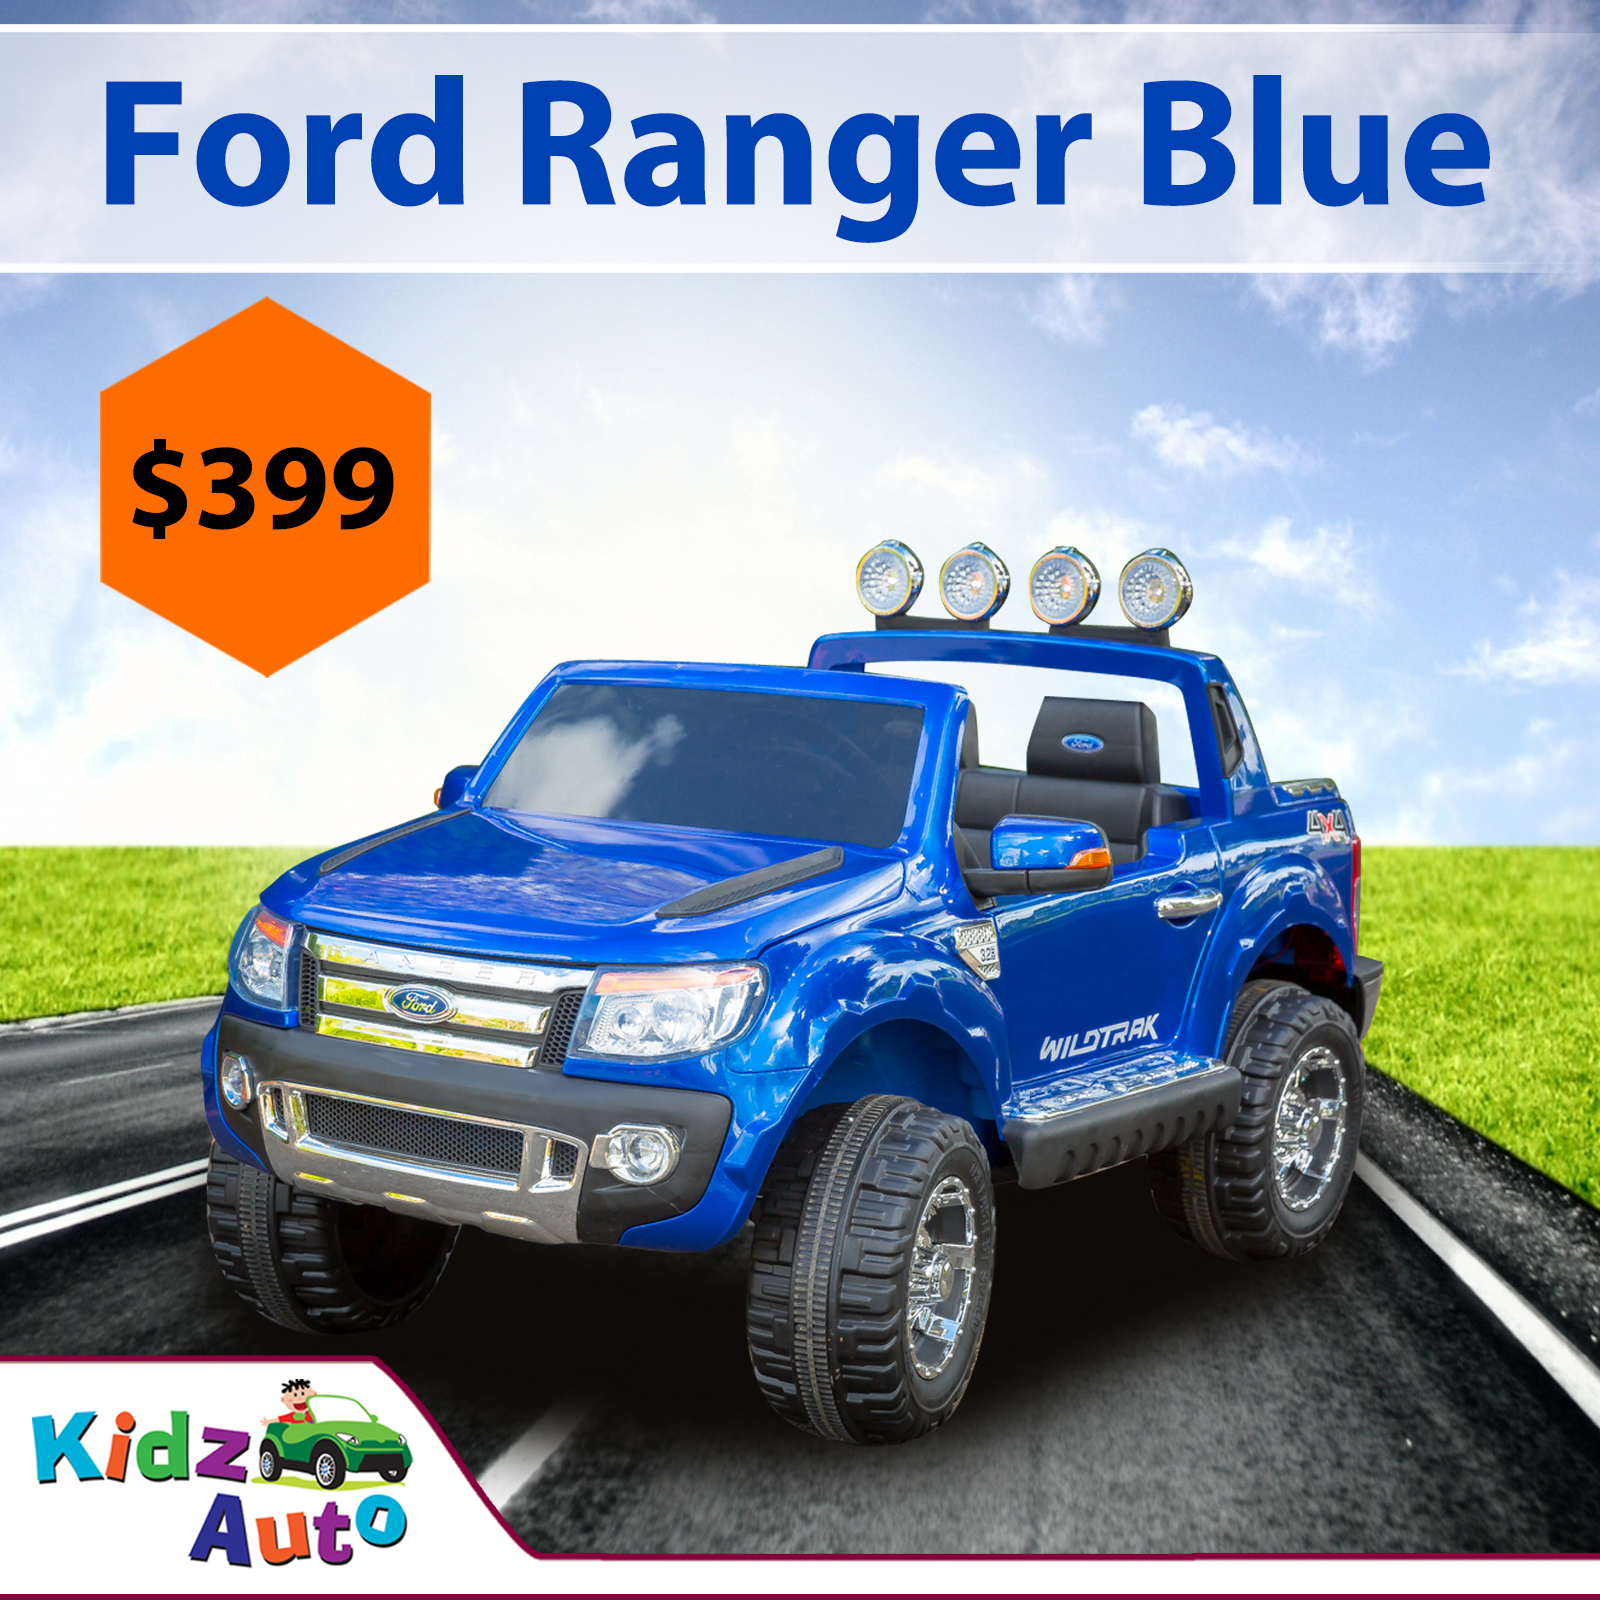 Licensed-Ford-Ranger-Blue-Ride-on-Car-Feature-Image